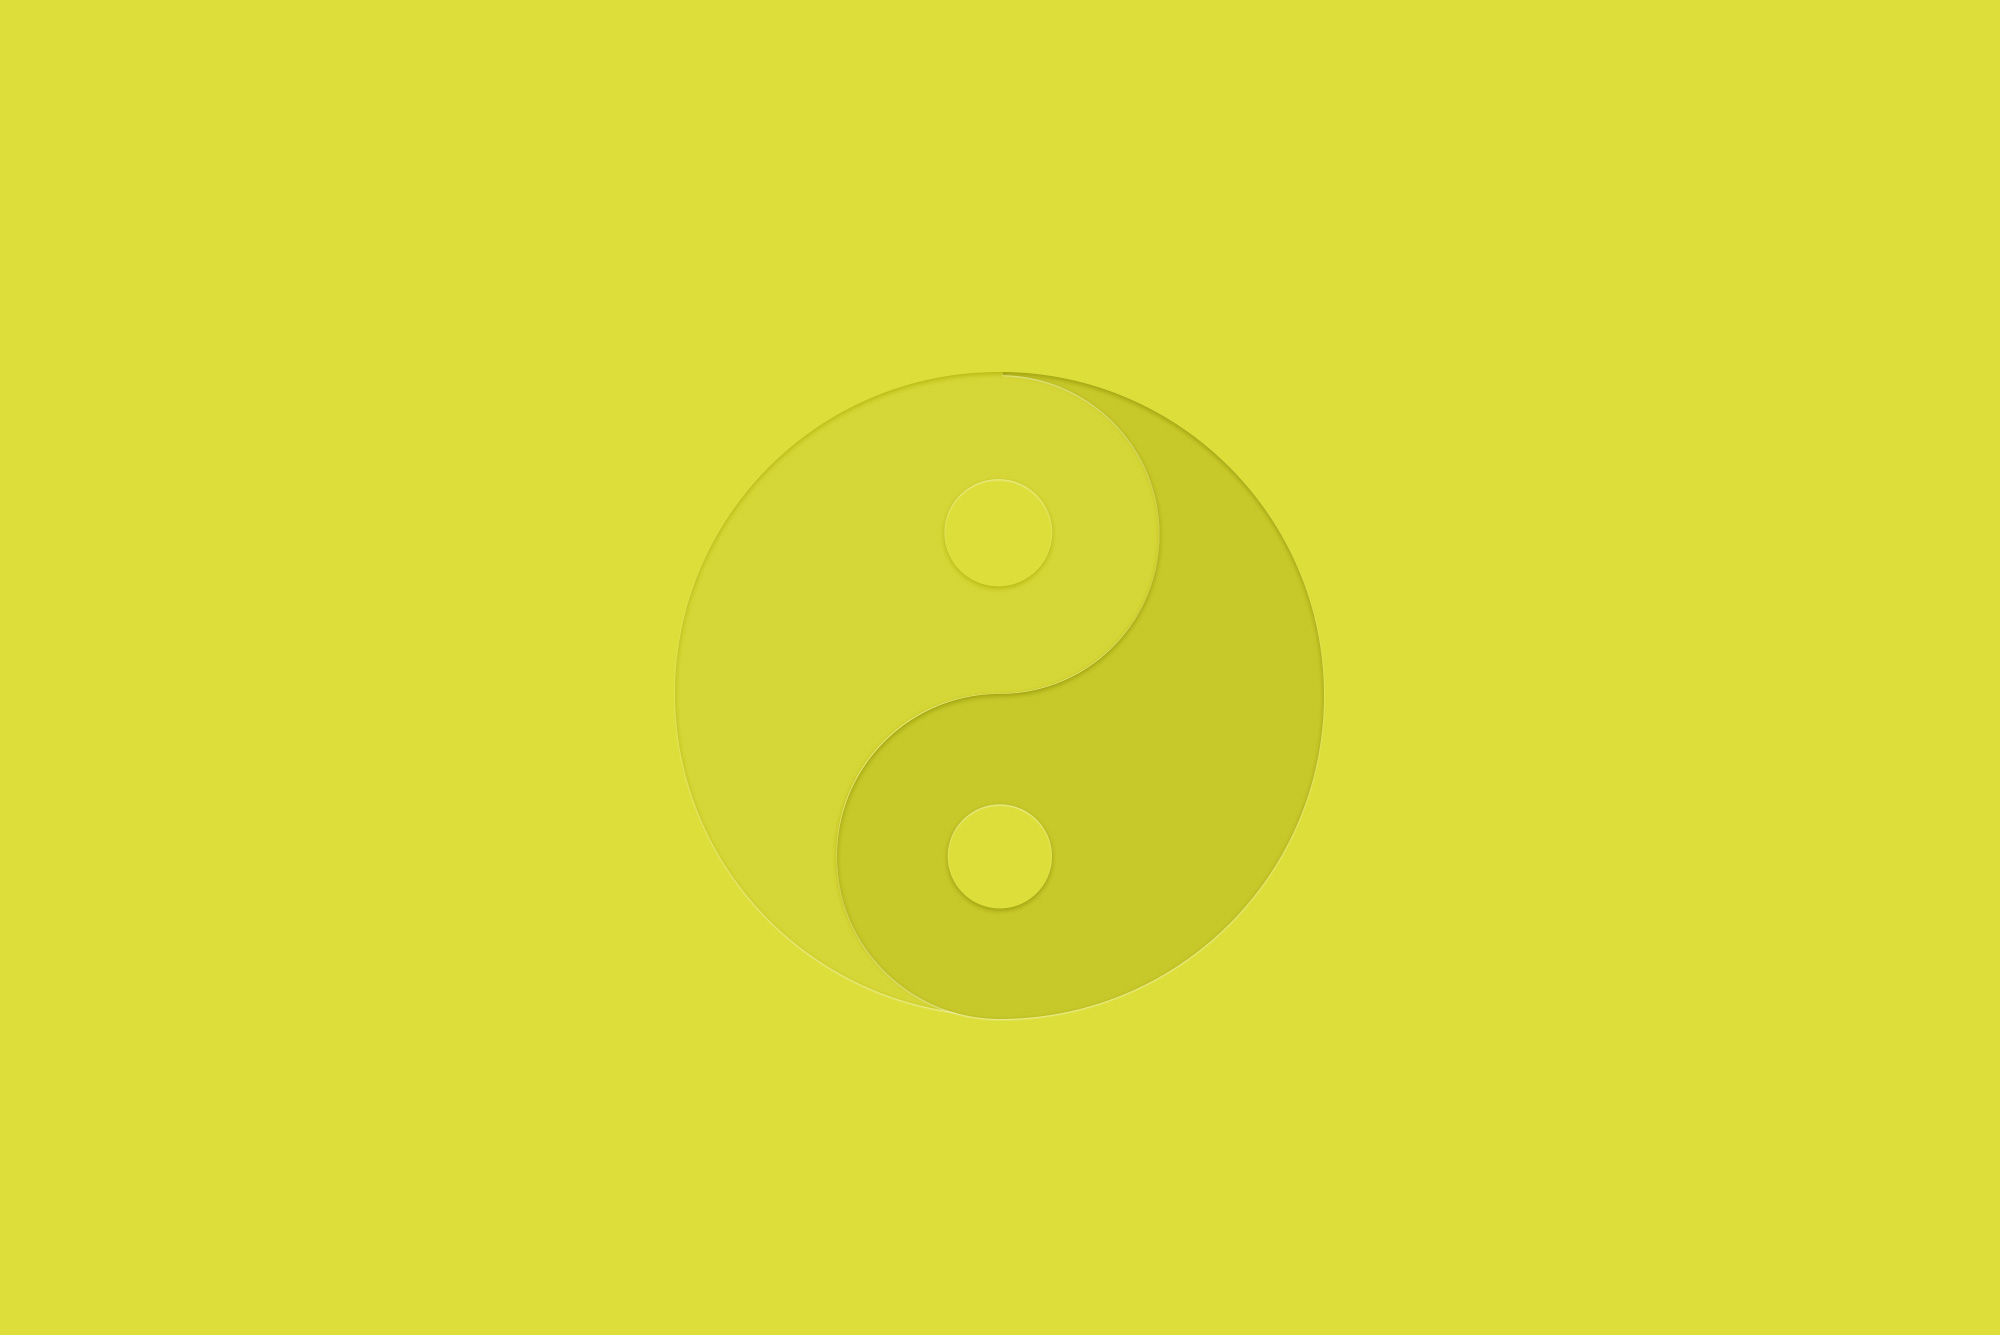 Ying and yang logo on yellow background - integrating traditional and digital